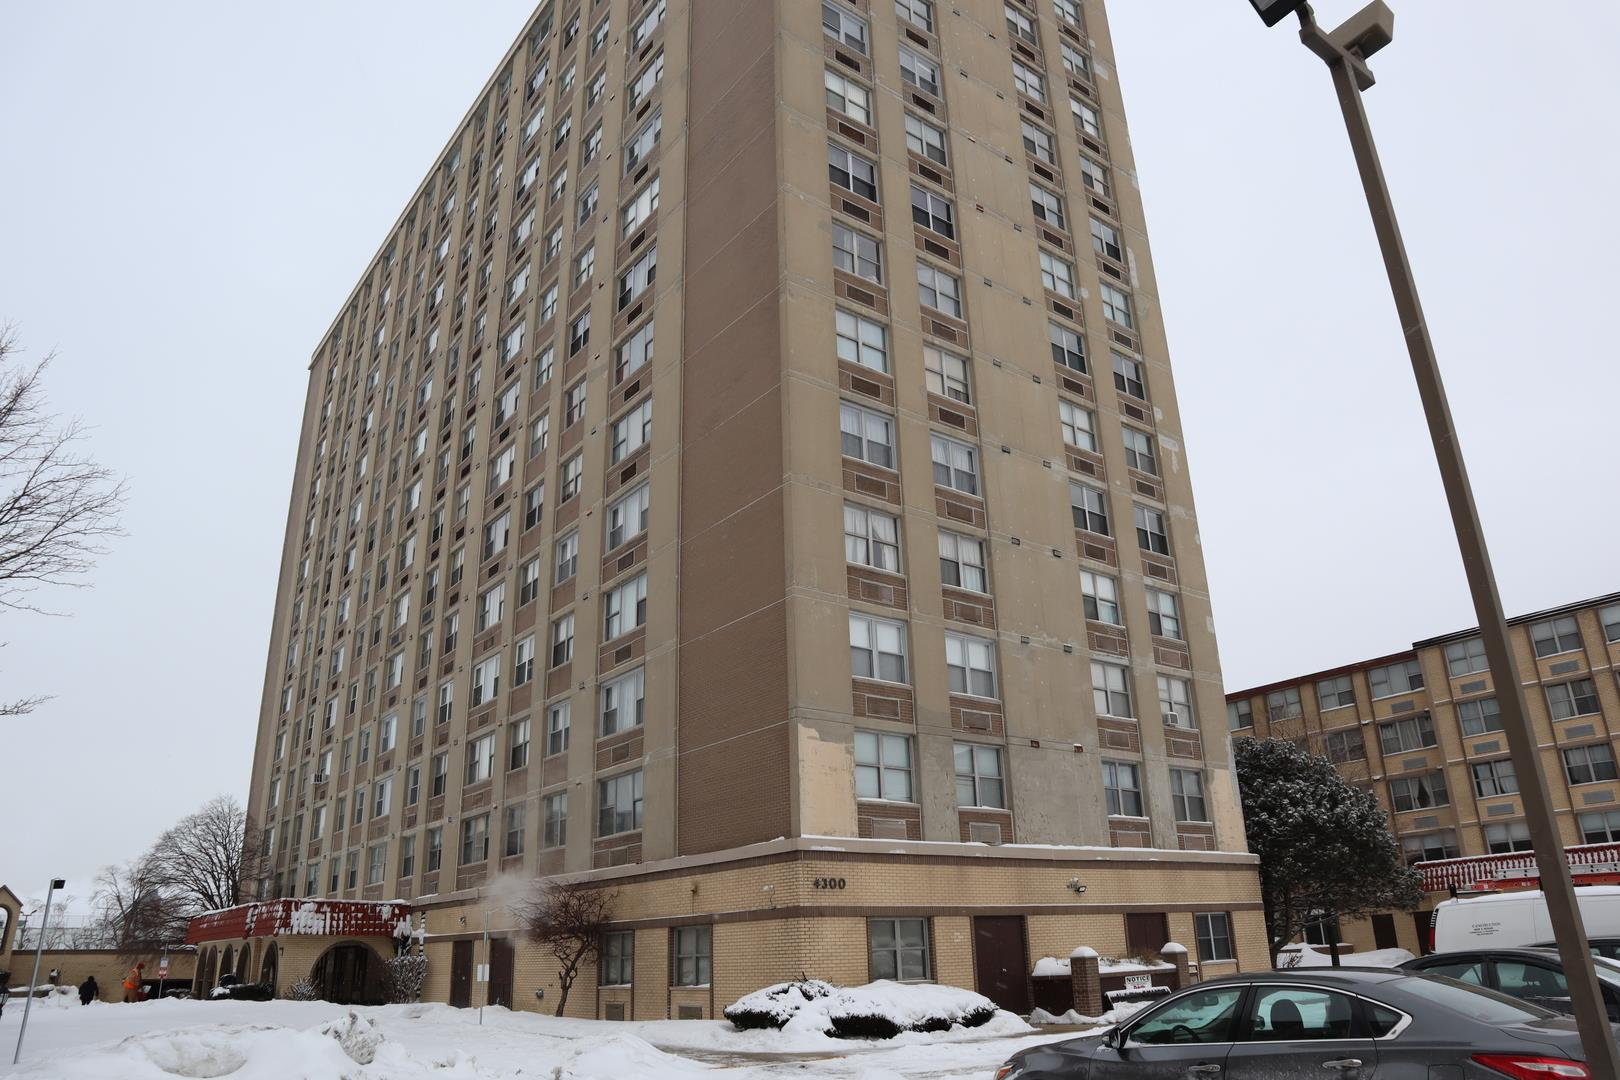 4300 W Ford City Drive #A408, Chicago, IL 60652 - #: 10996016